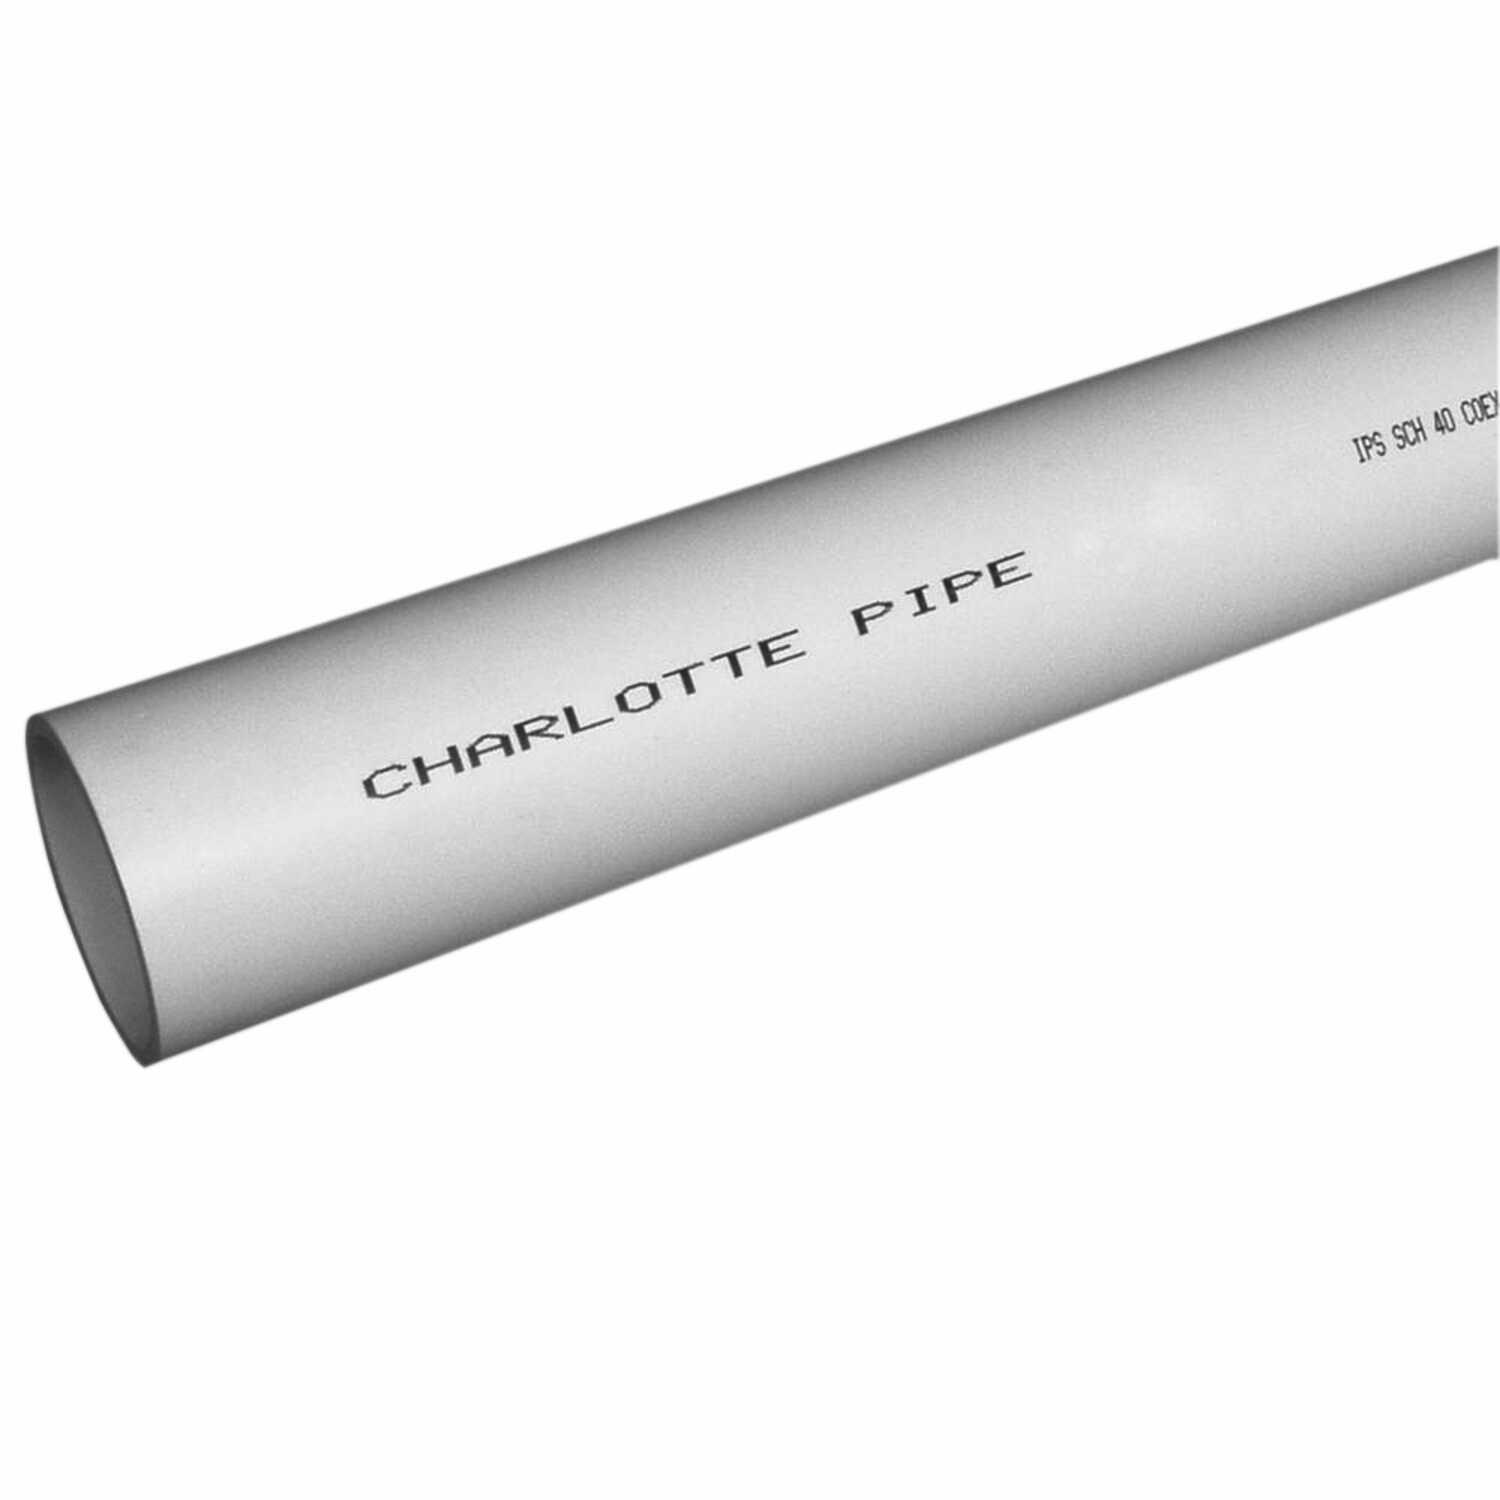 Charlotte Pipe  PVC Foam Core Pipe  2 in. Dia. x 20 ft. L Plain End  Schedule 40